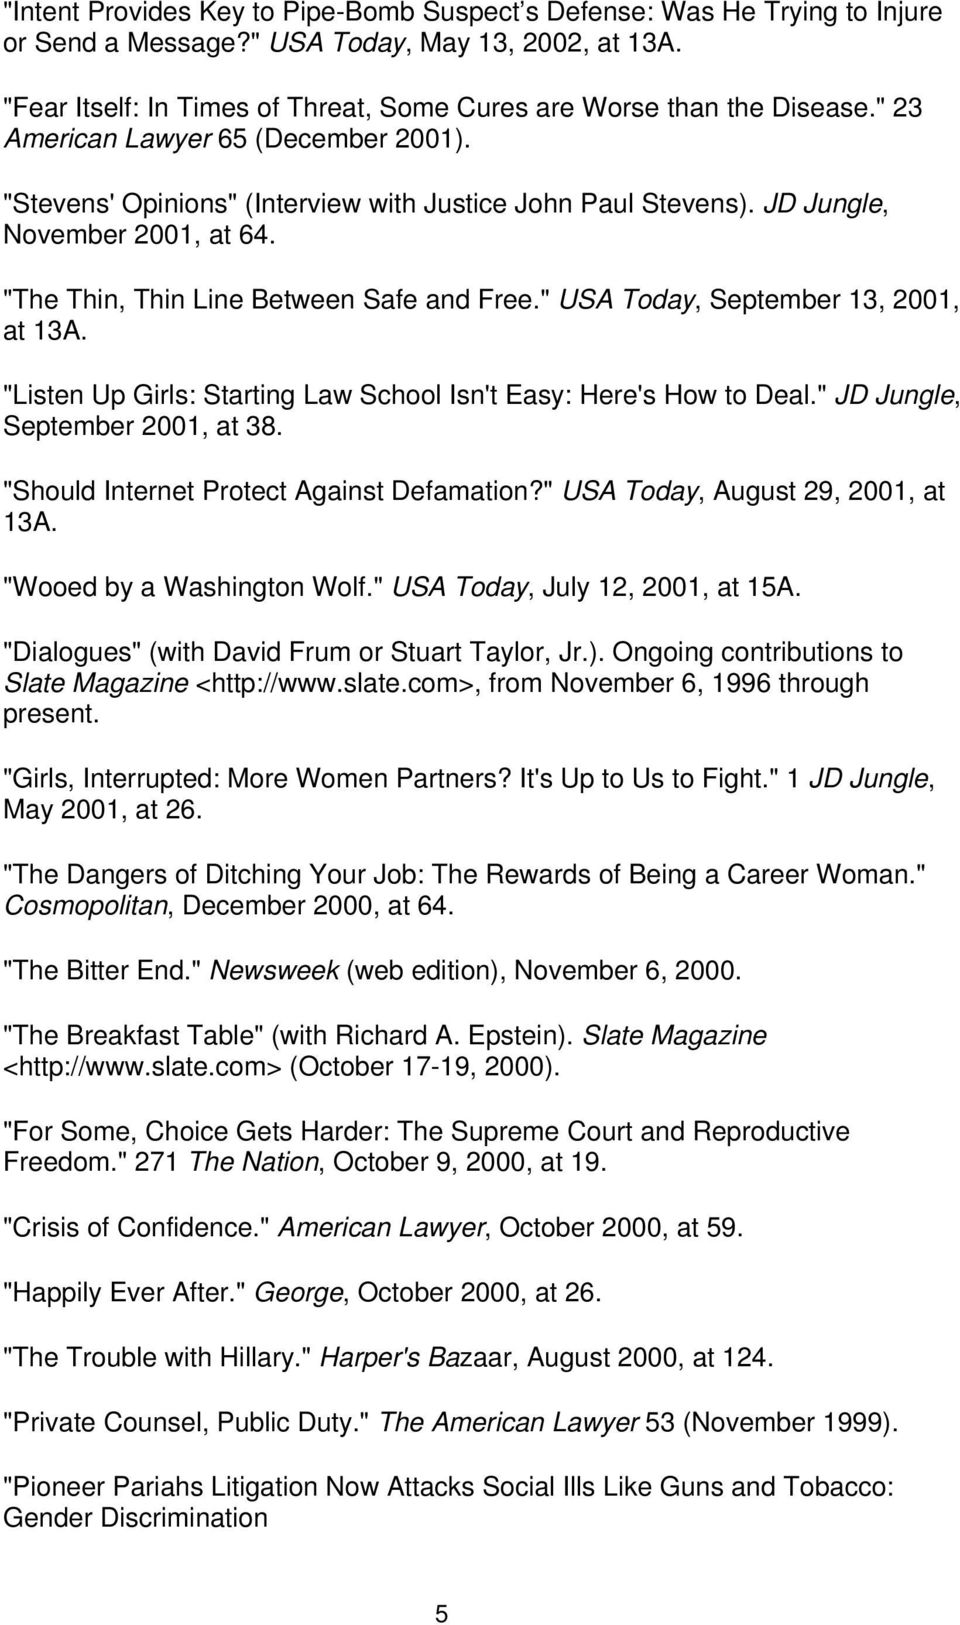 "JD Jungle, November 2001, at 64. ""The Thin, Thin Line Between Safe and Free."" USA Today, September 13, 2001, at 13A. ""Listen Up Girls: Starting Law School Isn't Easy: Here's How to Deal."